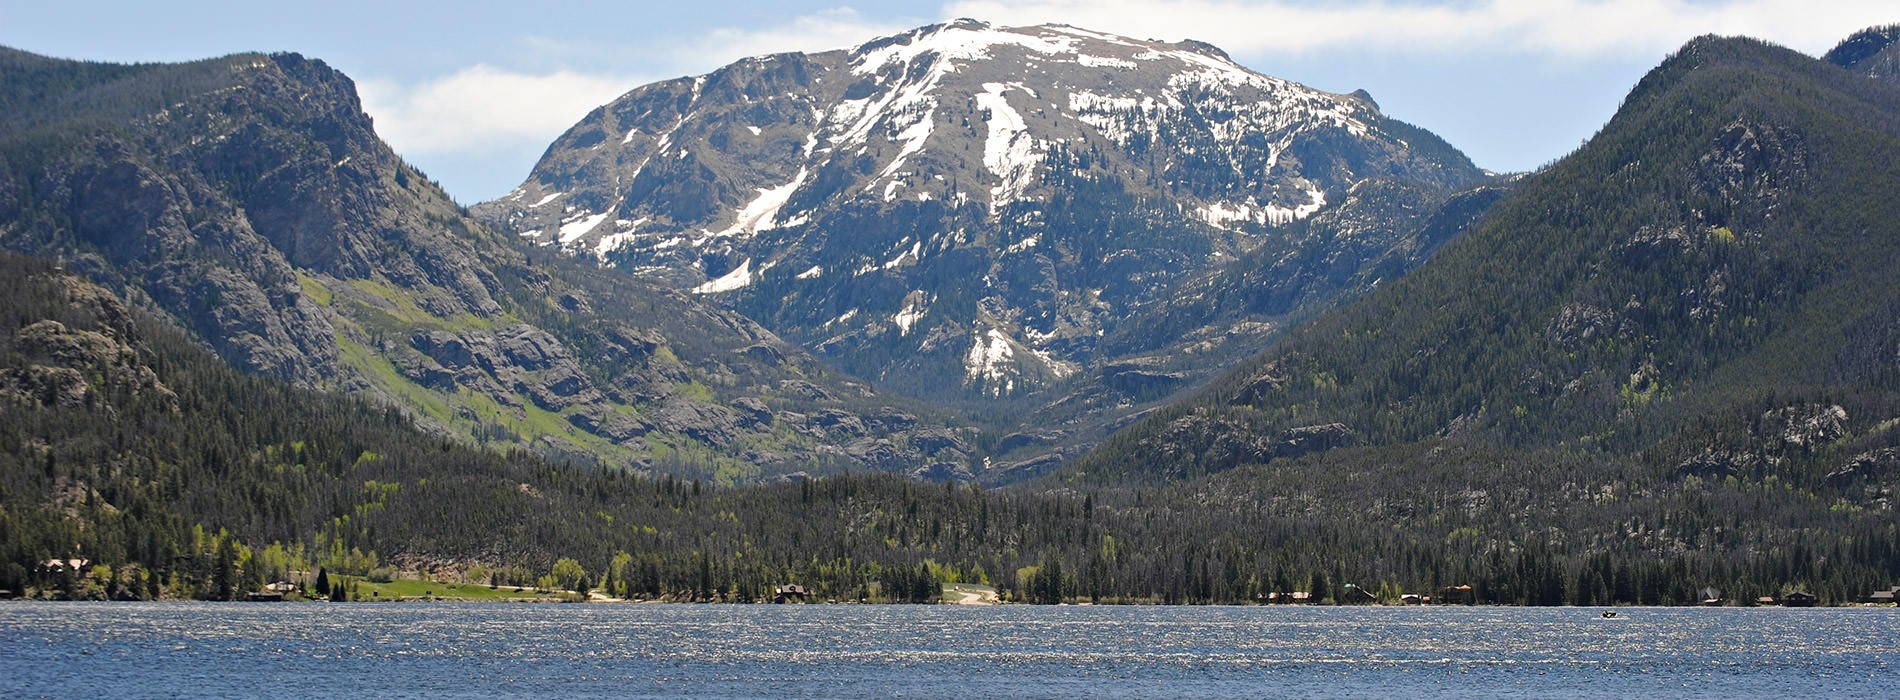 Grand Lake: Breathe deep, get outside and live it.